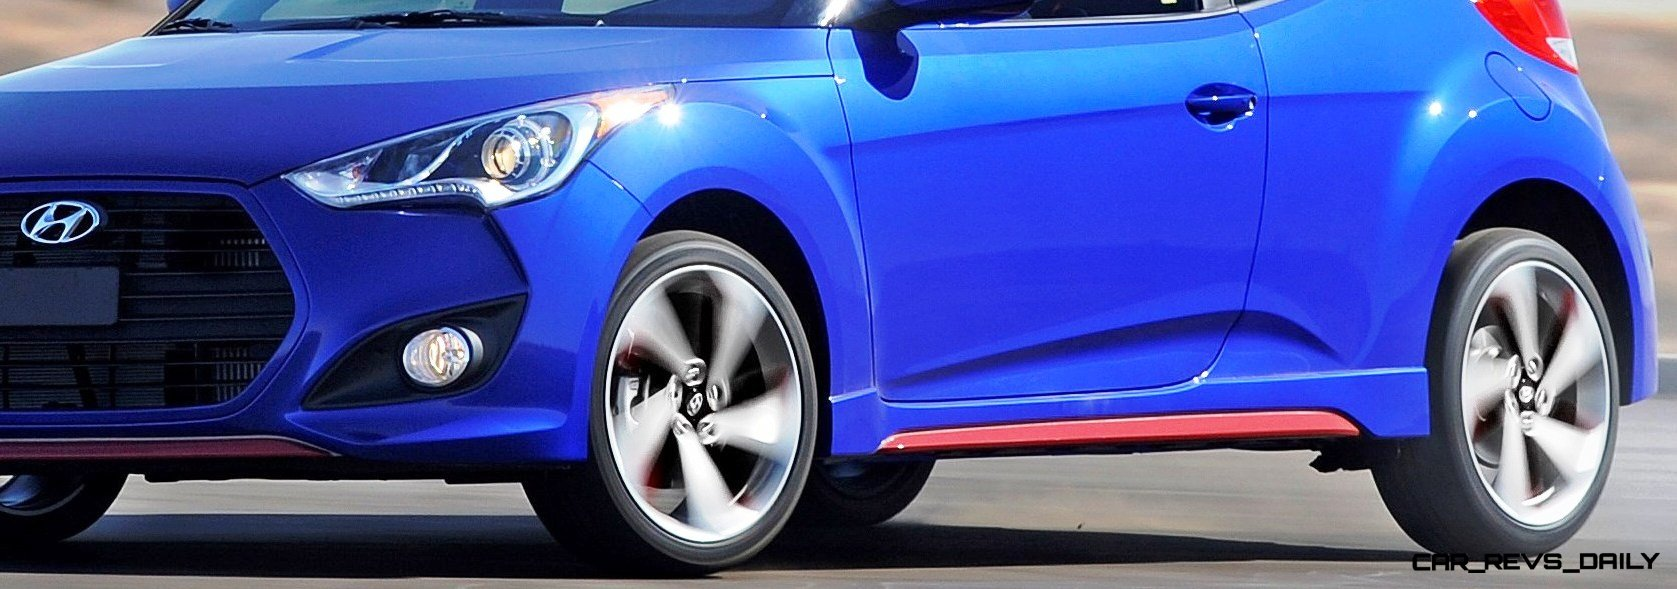 2014 Veloster R-Spec New for 2014 with Nurburgring Chassis Tech 33